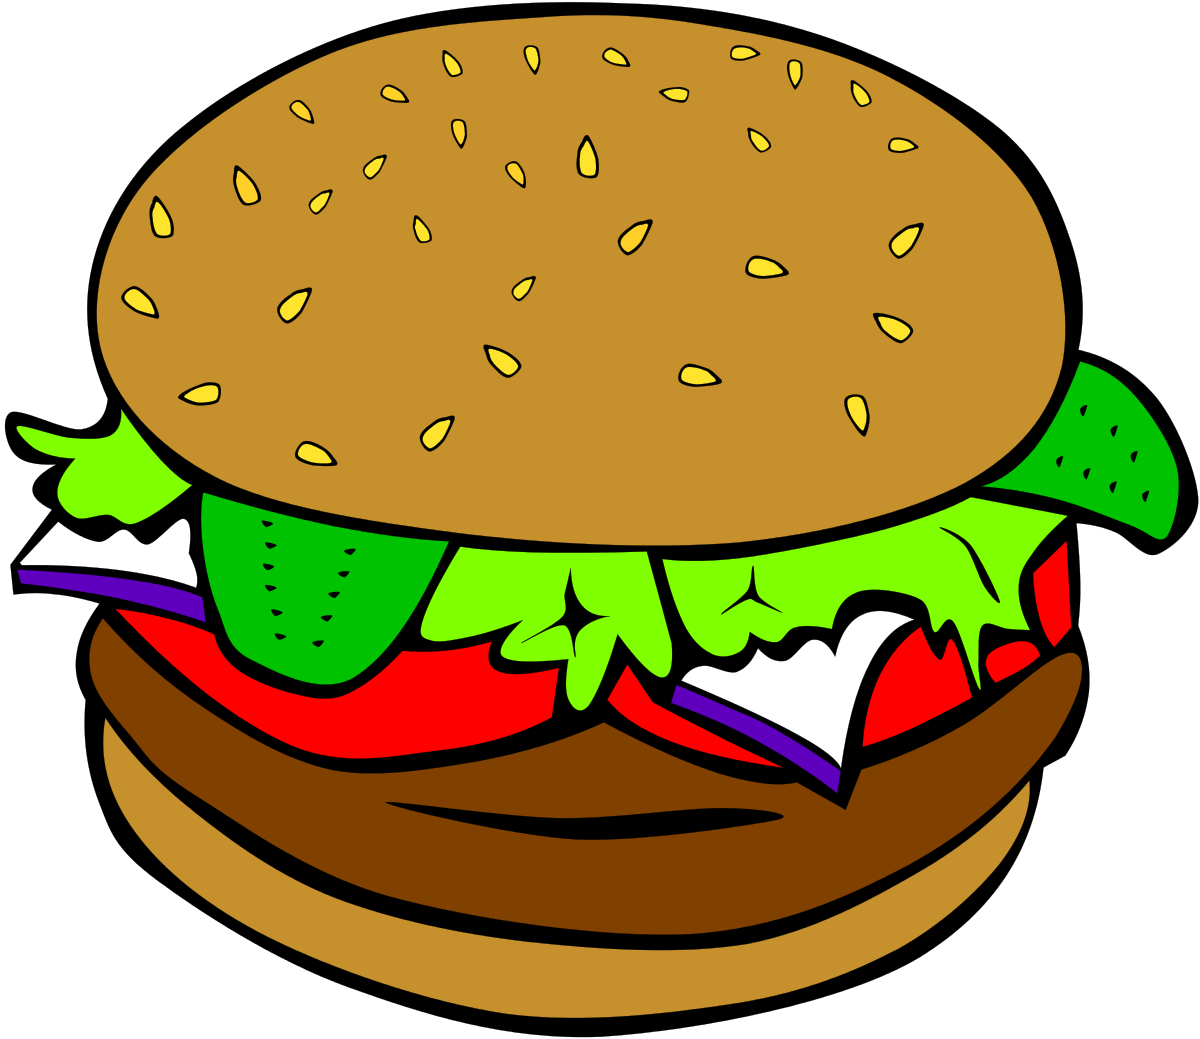 Grilled Cheese Sandwich Clipart | Clipart Panda - Free Clipart Images